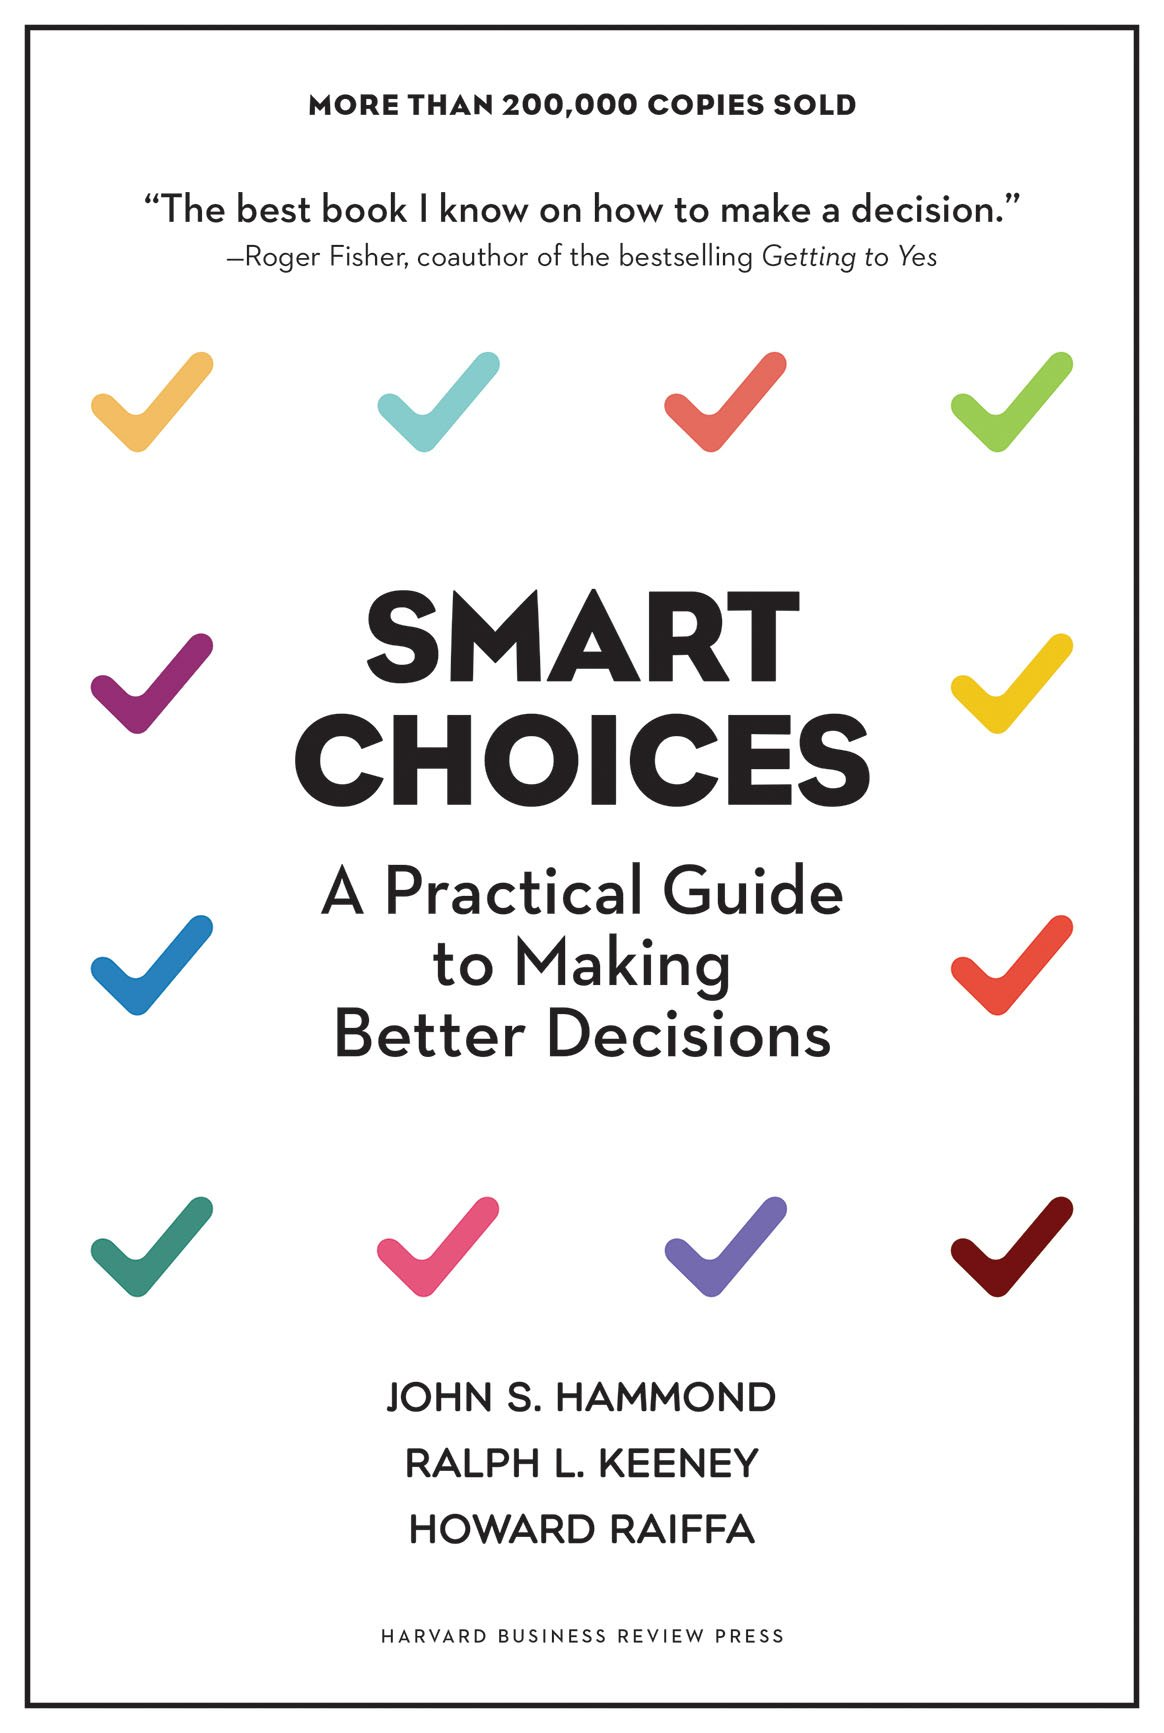 Smart Choices: A Practical Guide to Making Better Decisions: John S.  Hammond, Ralph L. Keeney, Howard Raiffa: 9781633691049: Amazon.com: Books